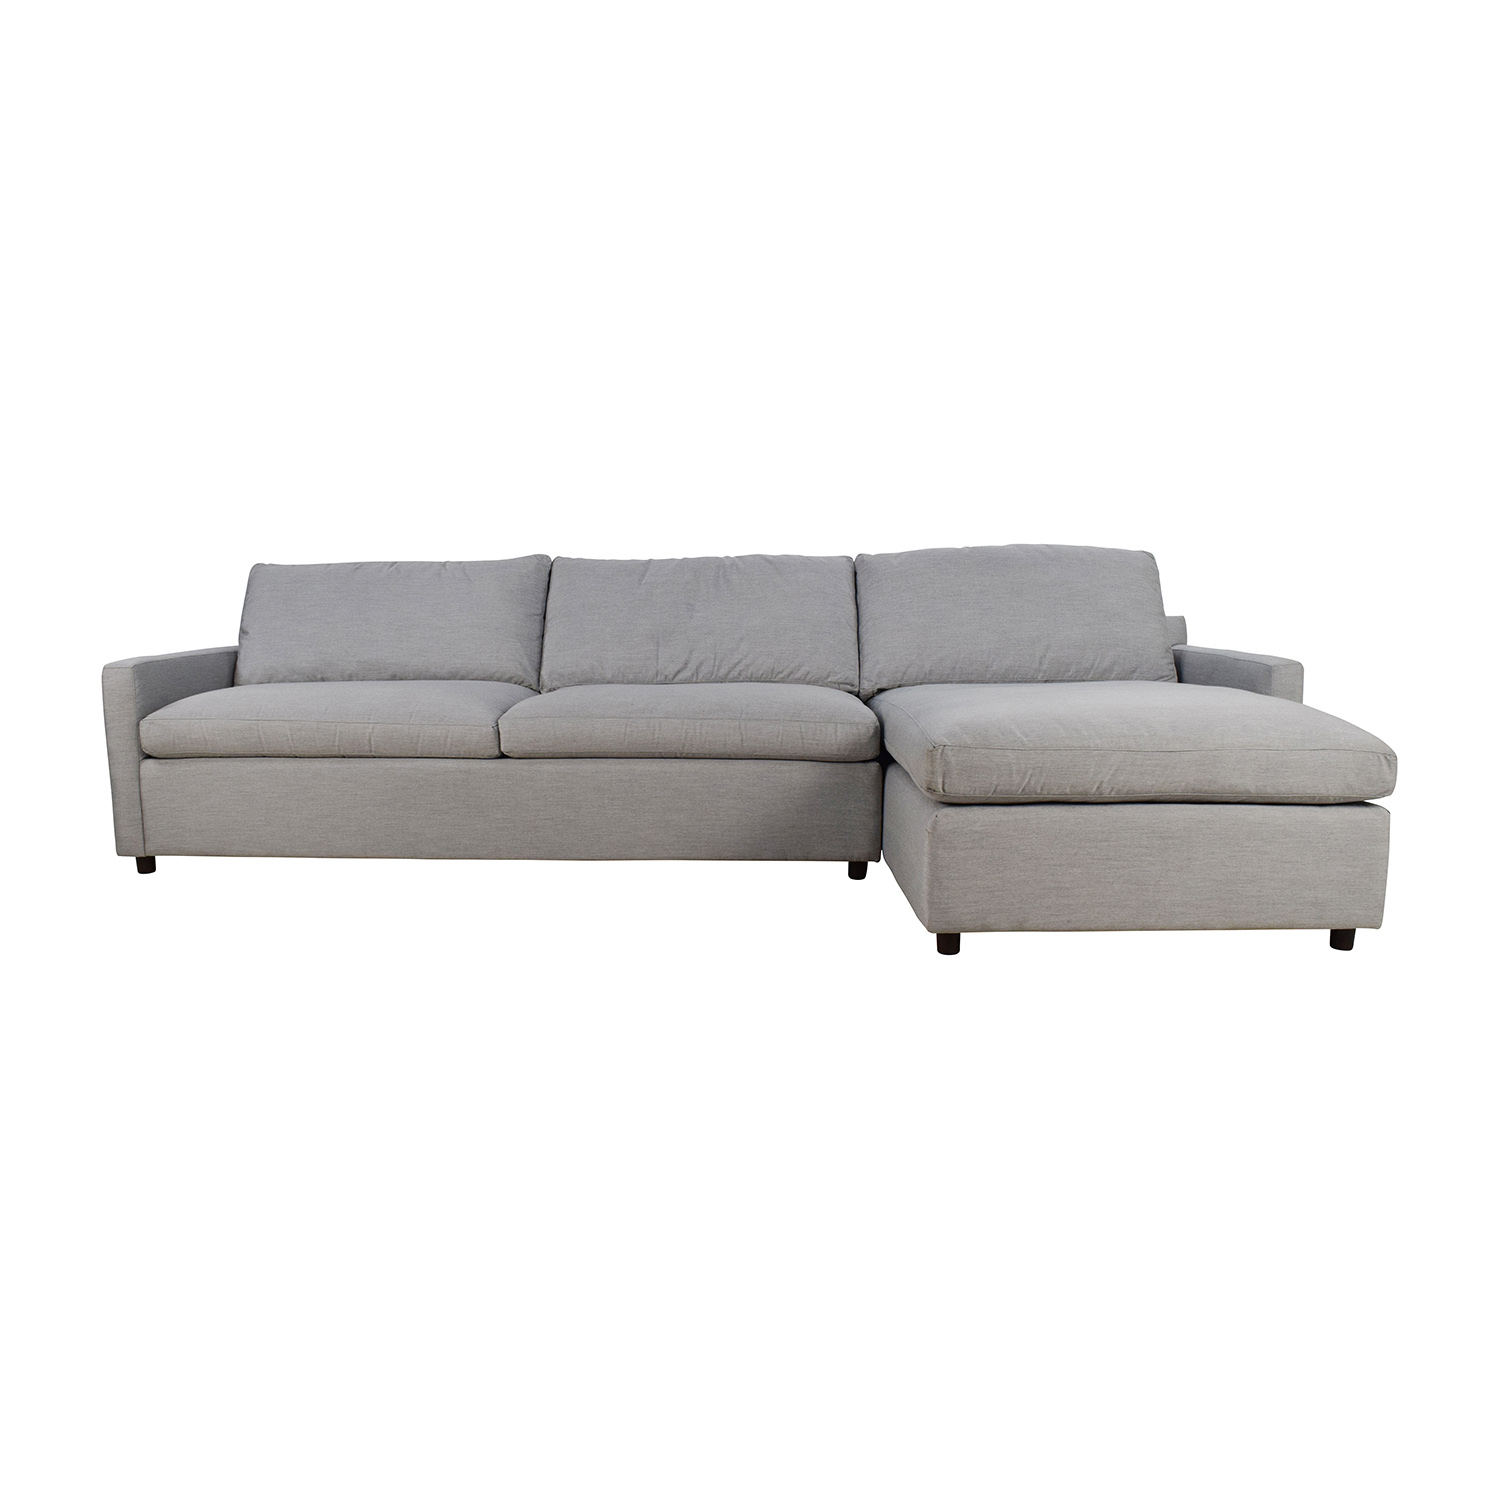 buy ABC Carpet & Home Cobble Hill Lucali Sectional ABC Carpet and Home